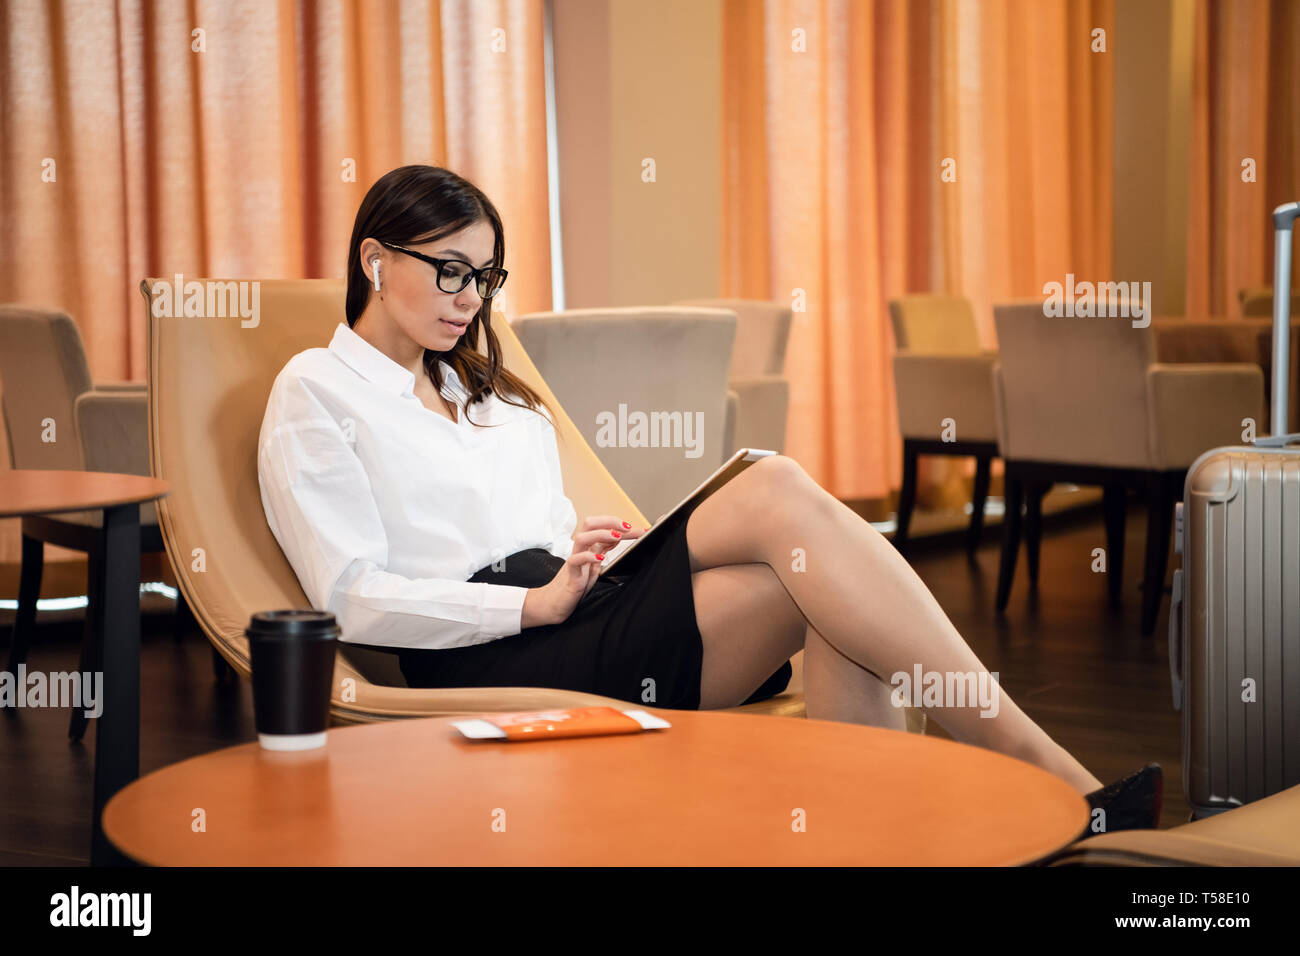 Confident businesswoman listening music on her tablet computer while sitting in chair in airport business lounge - Stock Image